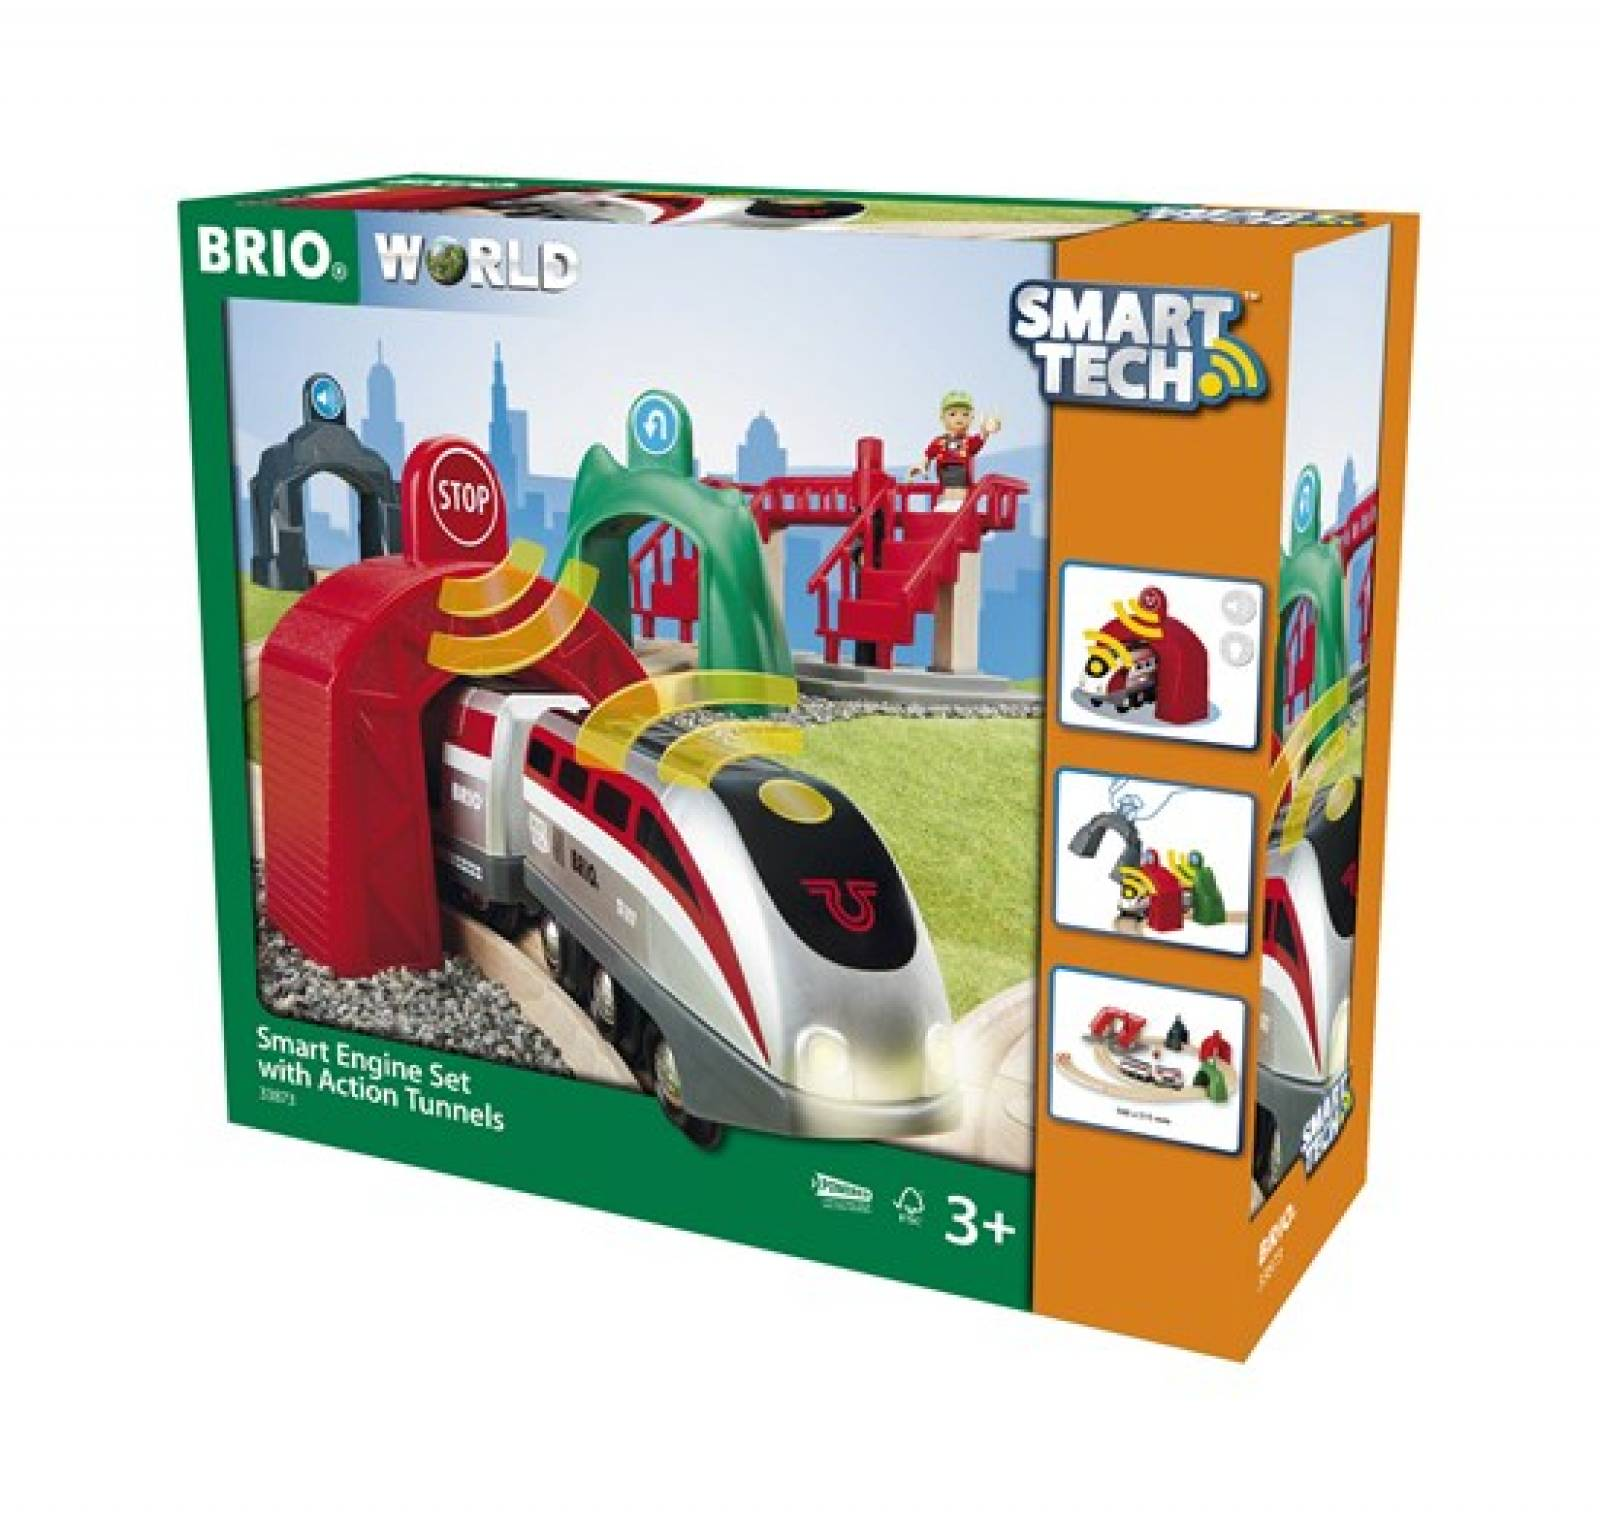 Smart Tech Engine Set + Action Tunnels BRIO Wooden Railway 3+ thumbnails